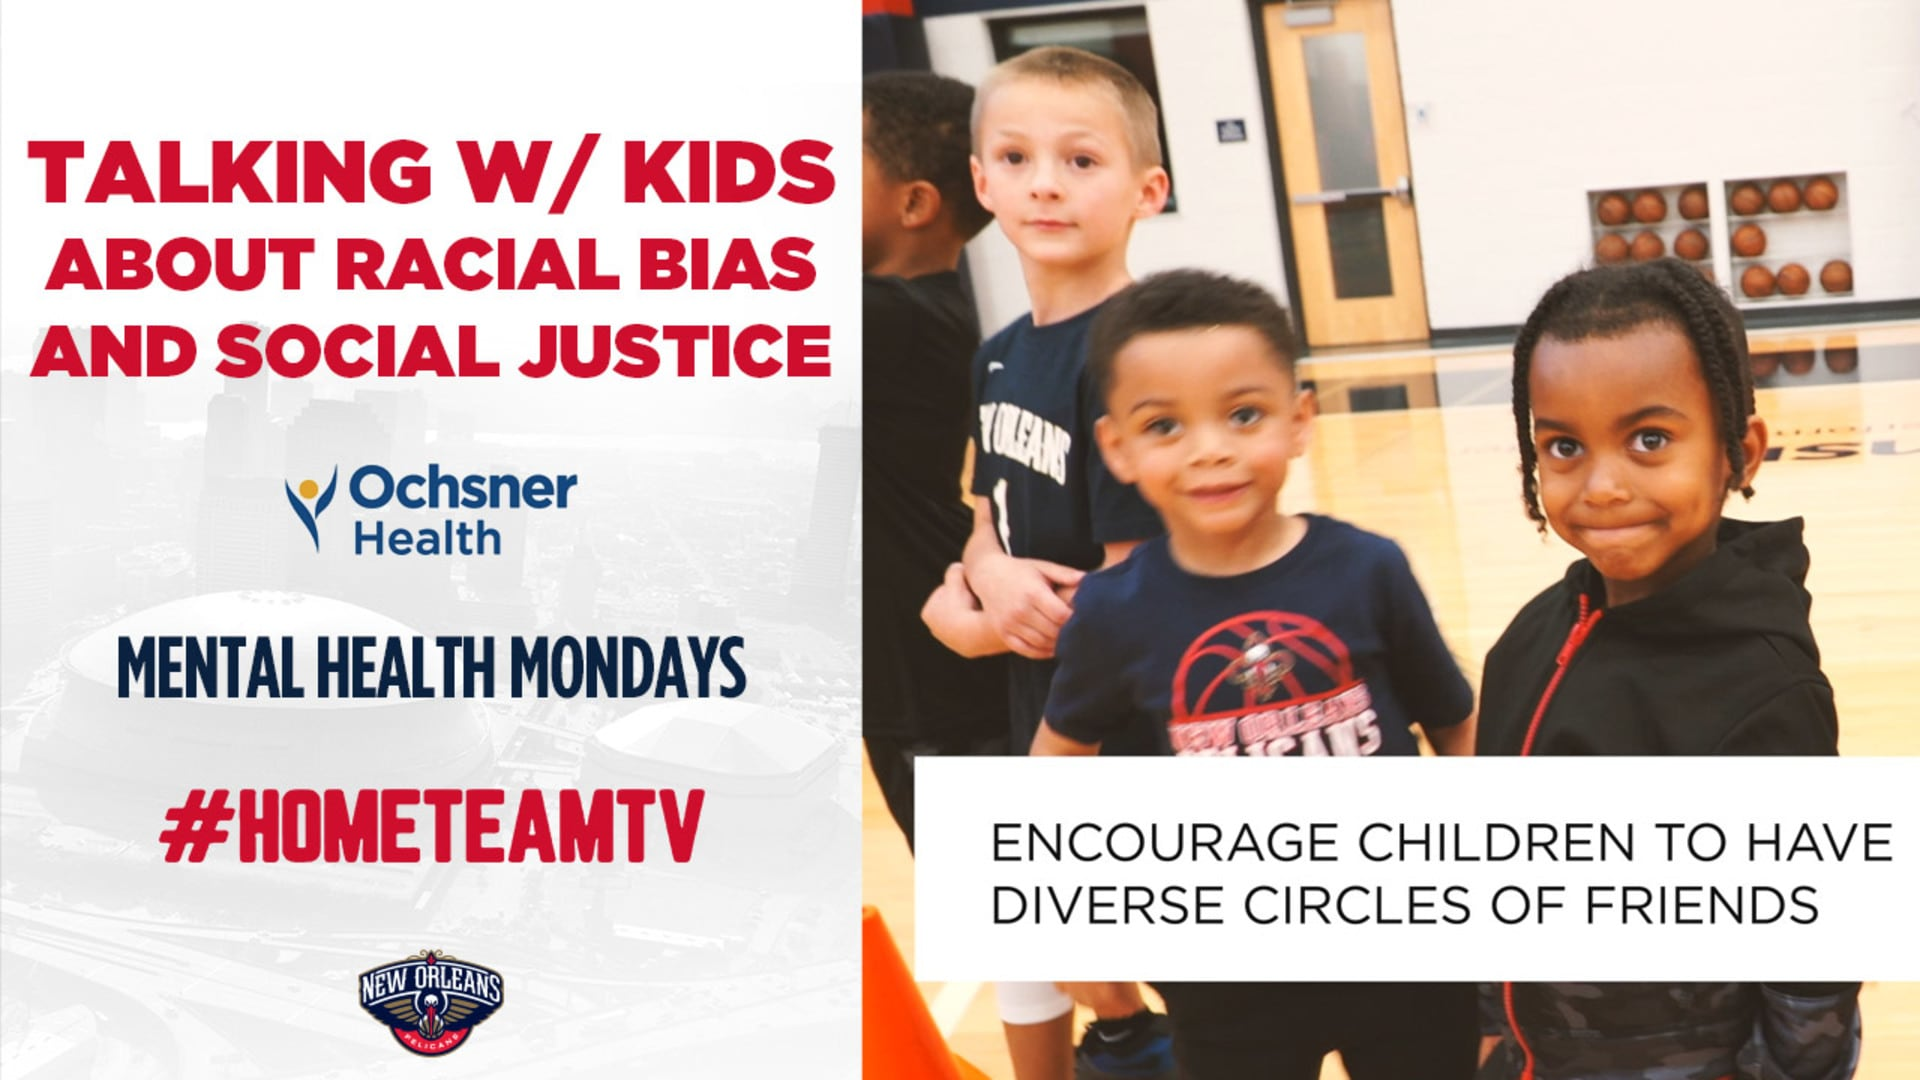 HomeTeamTV: Talking with children about racial bias and social justice, 6/8/20